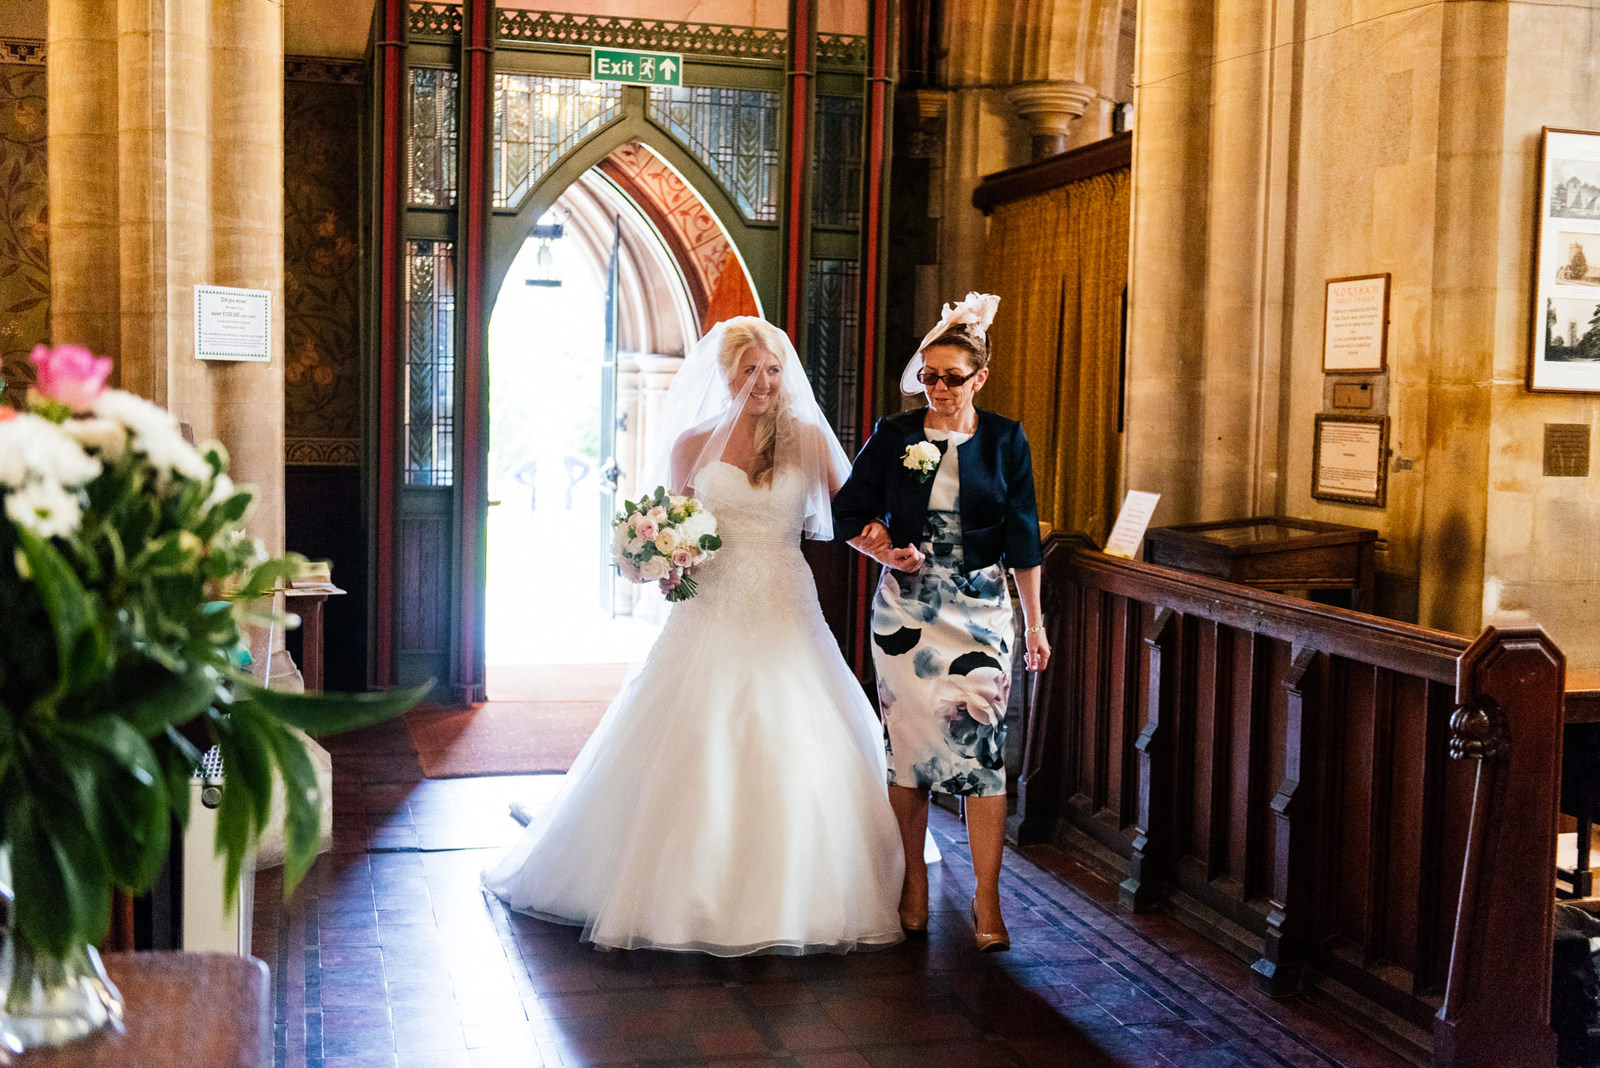 bride's entrance to church with her mother